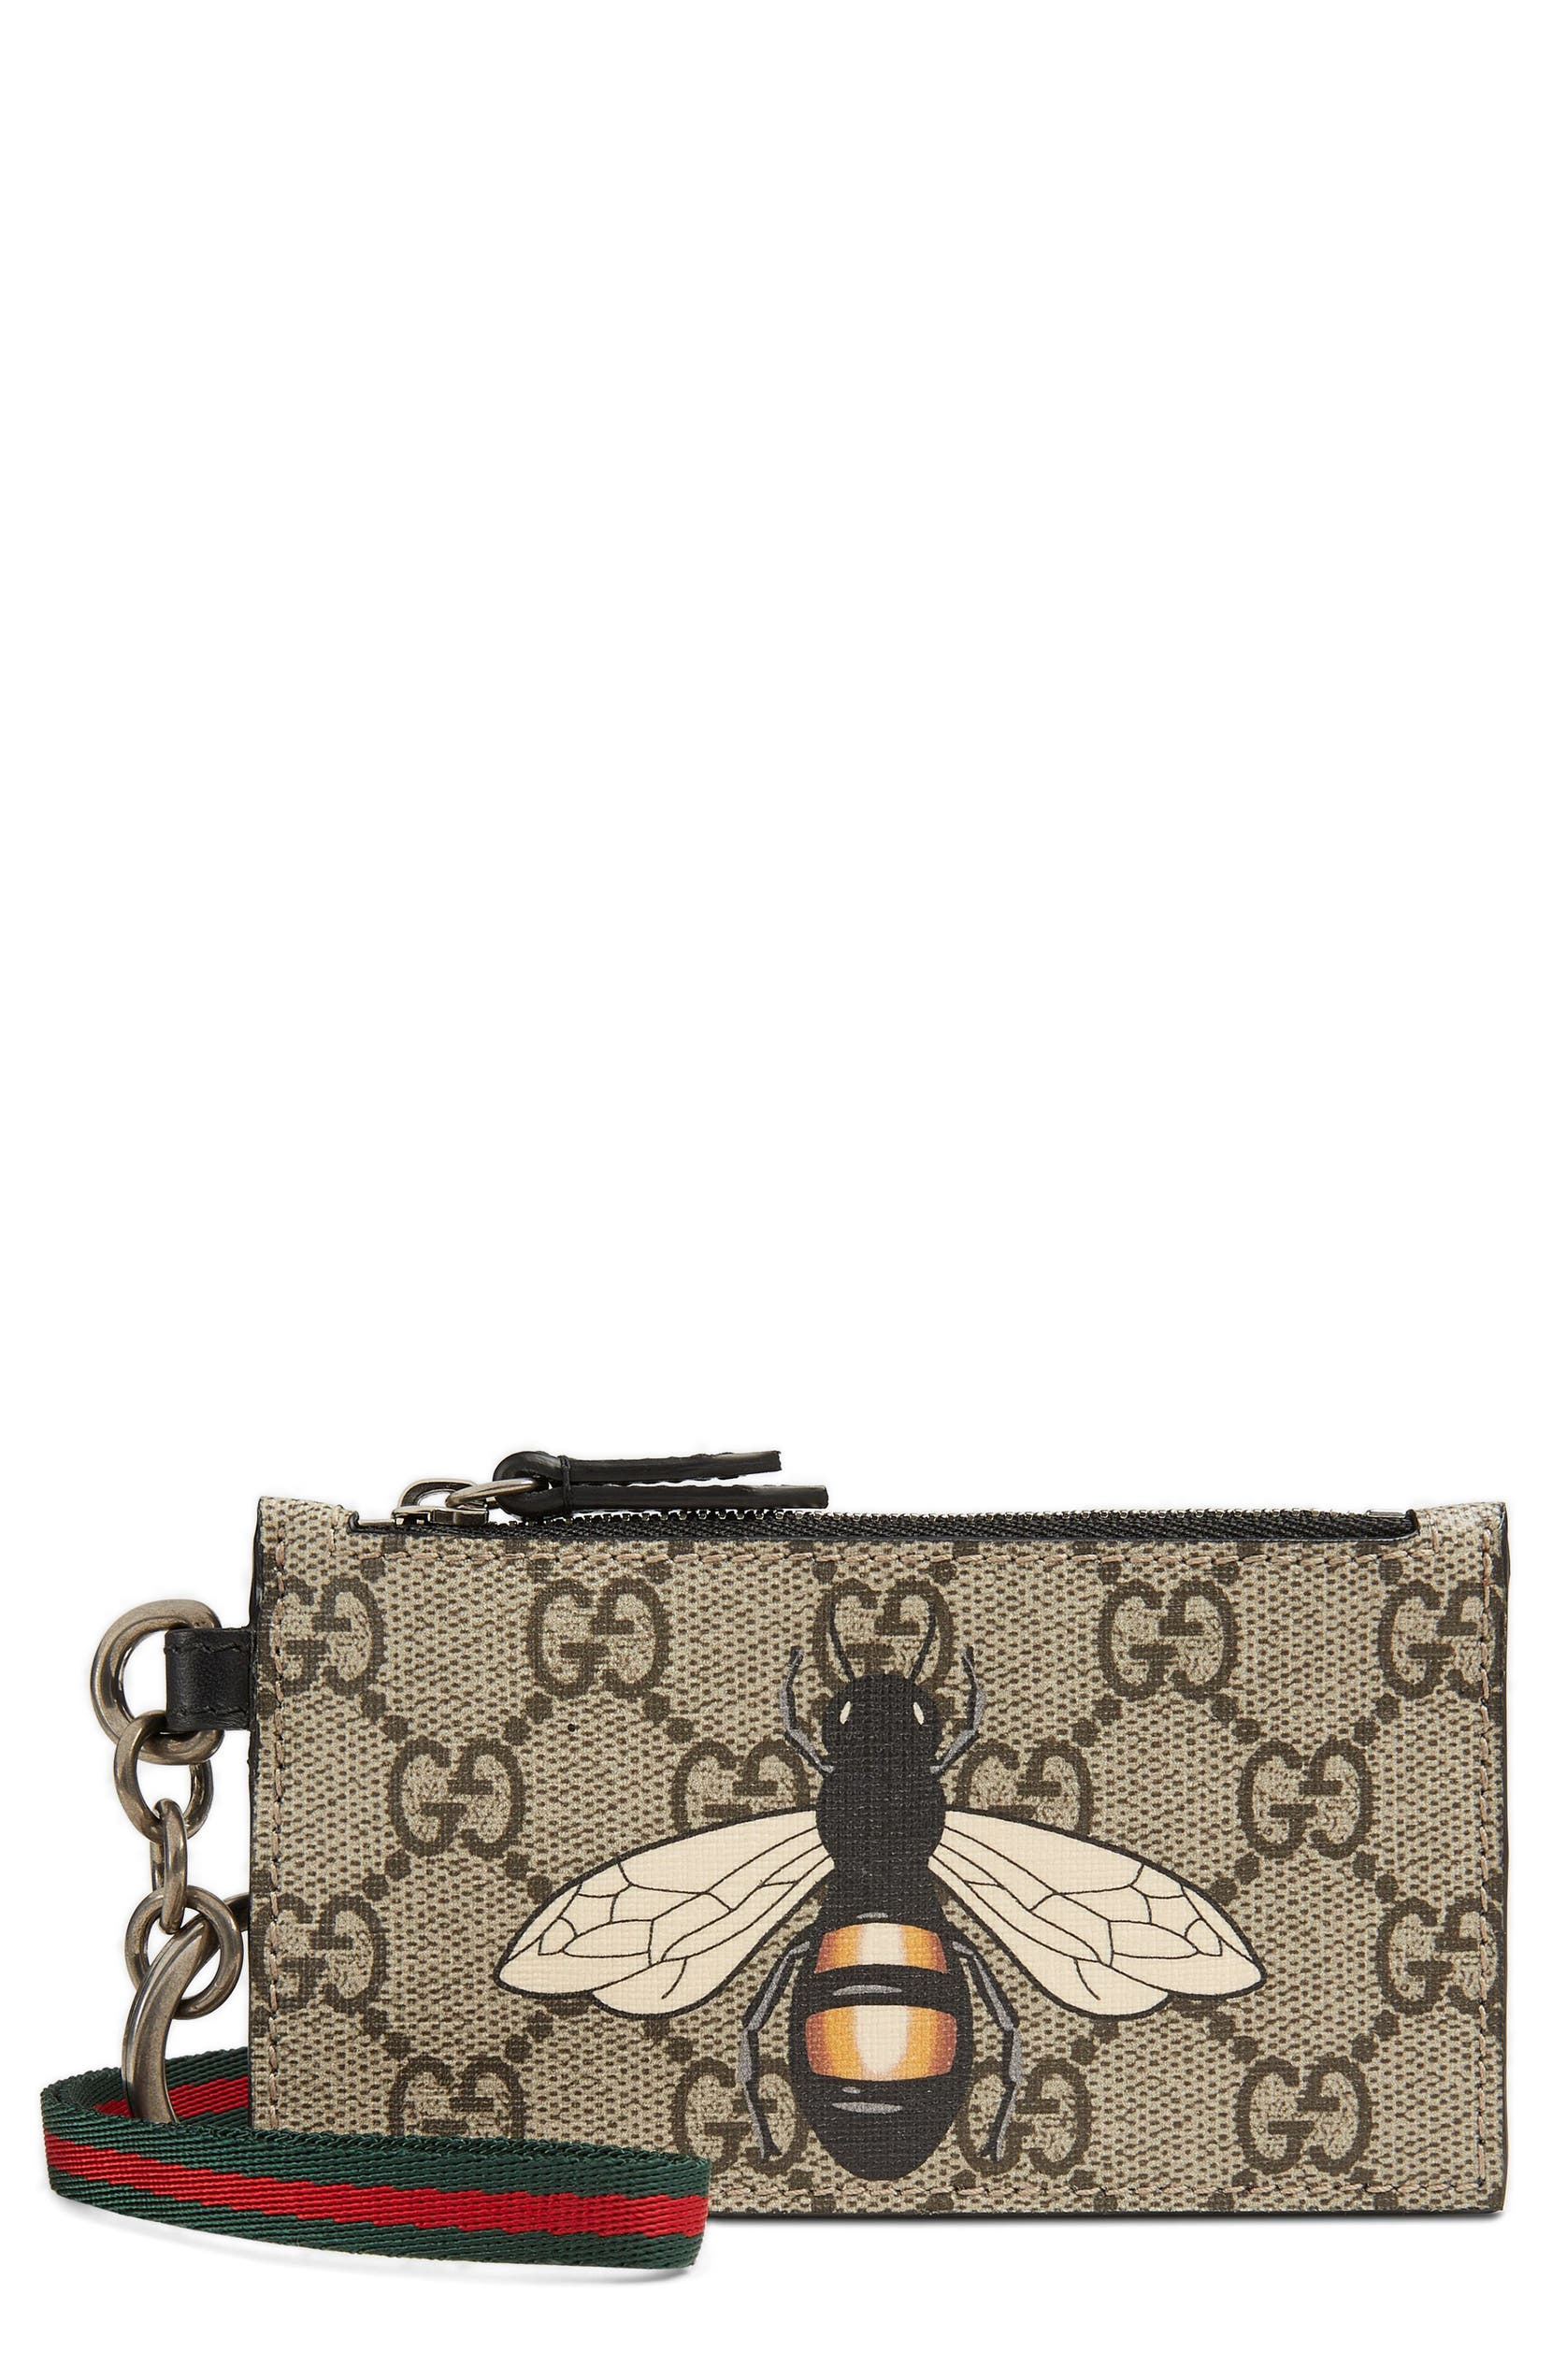 save off 1f738 cf309 Gucci GG Supreme Bee Print Lanyard Card Case | Nordstrom